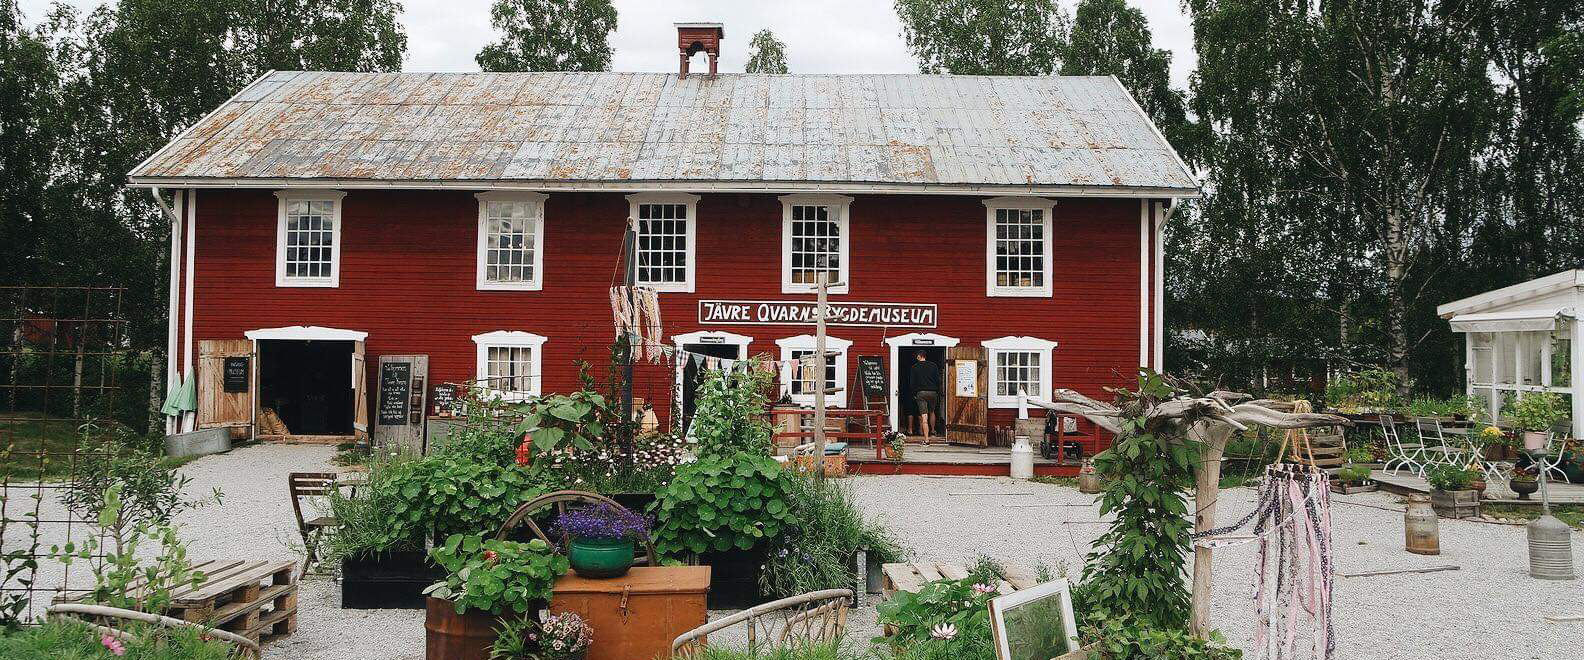 Jävremill and museum